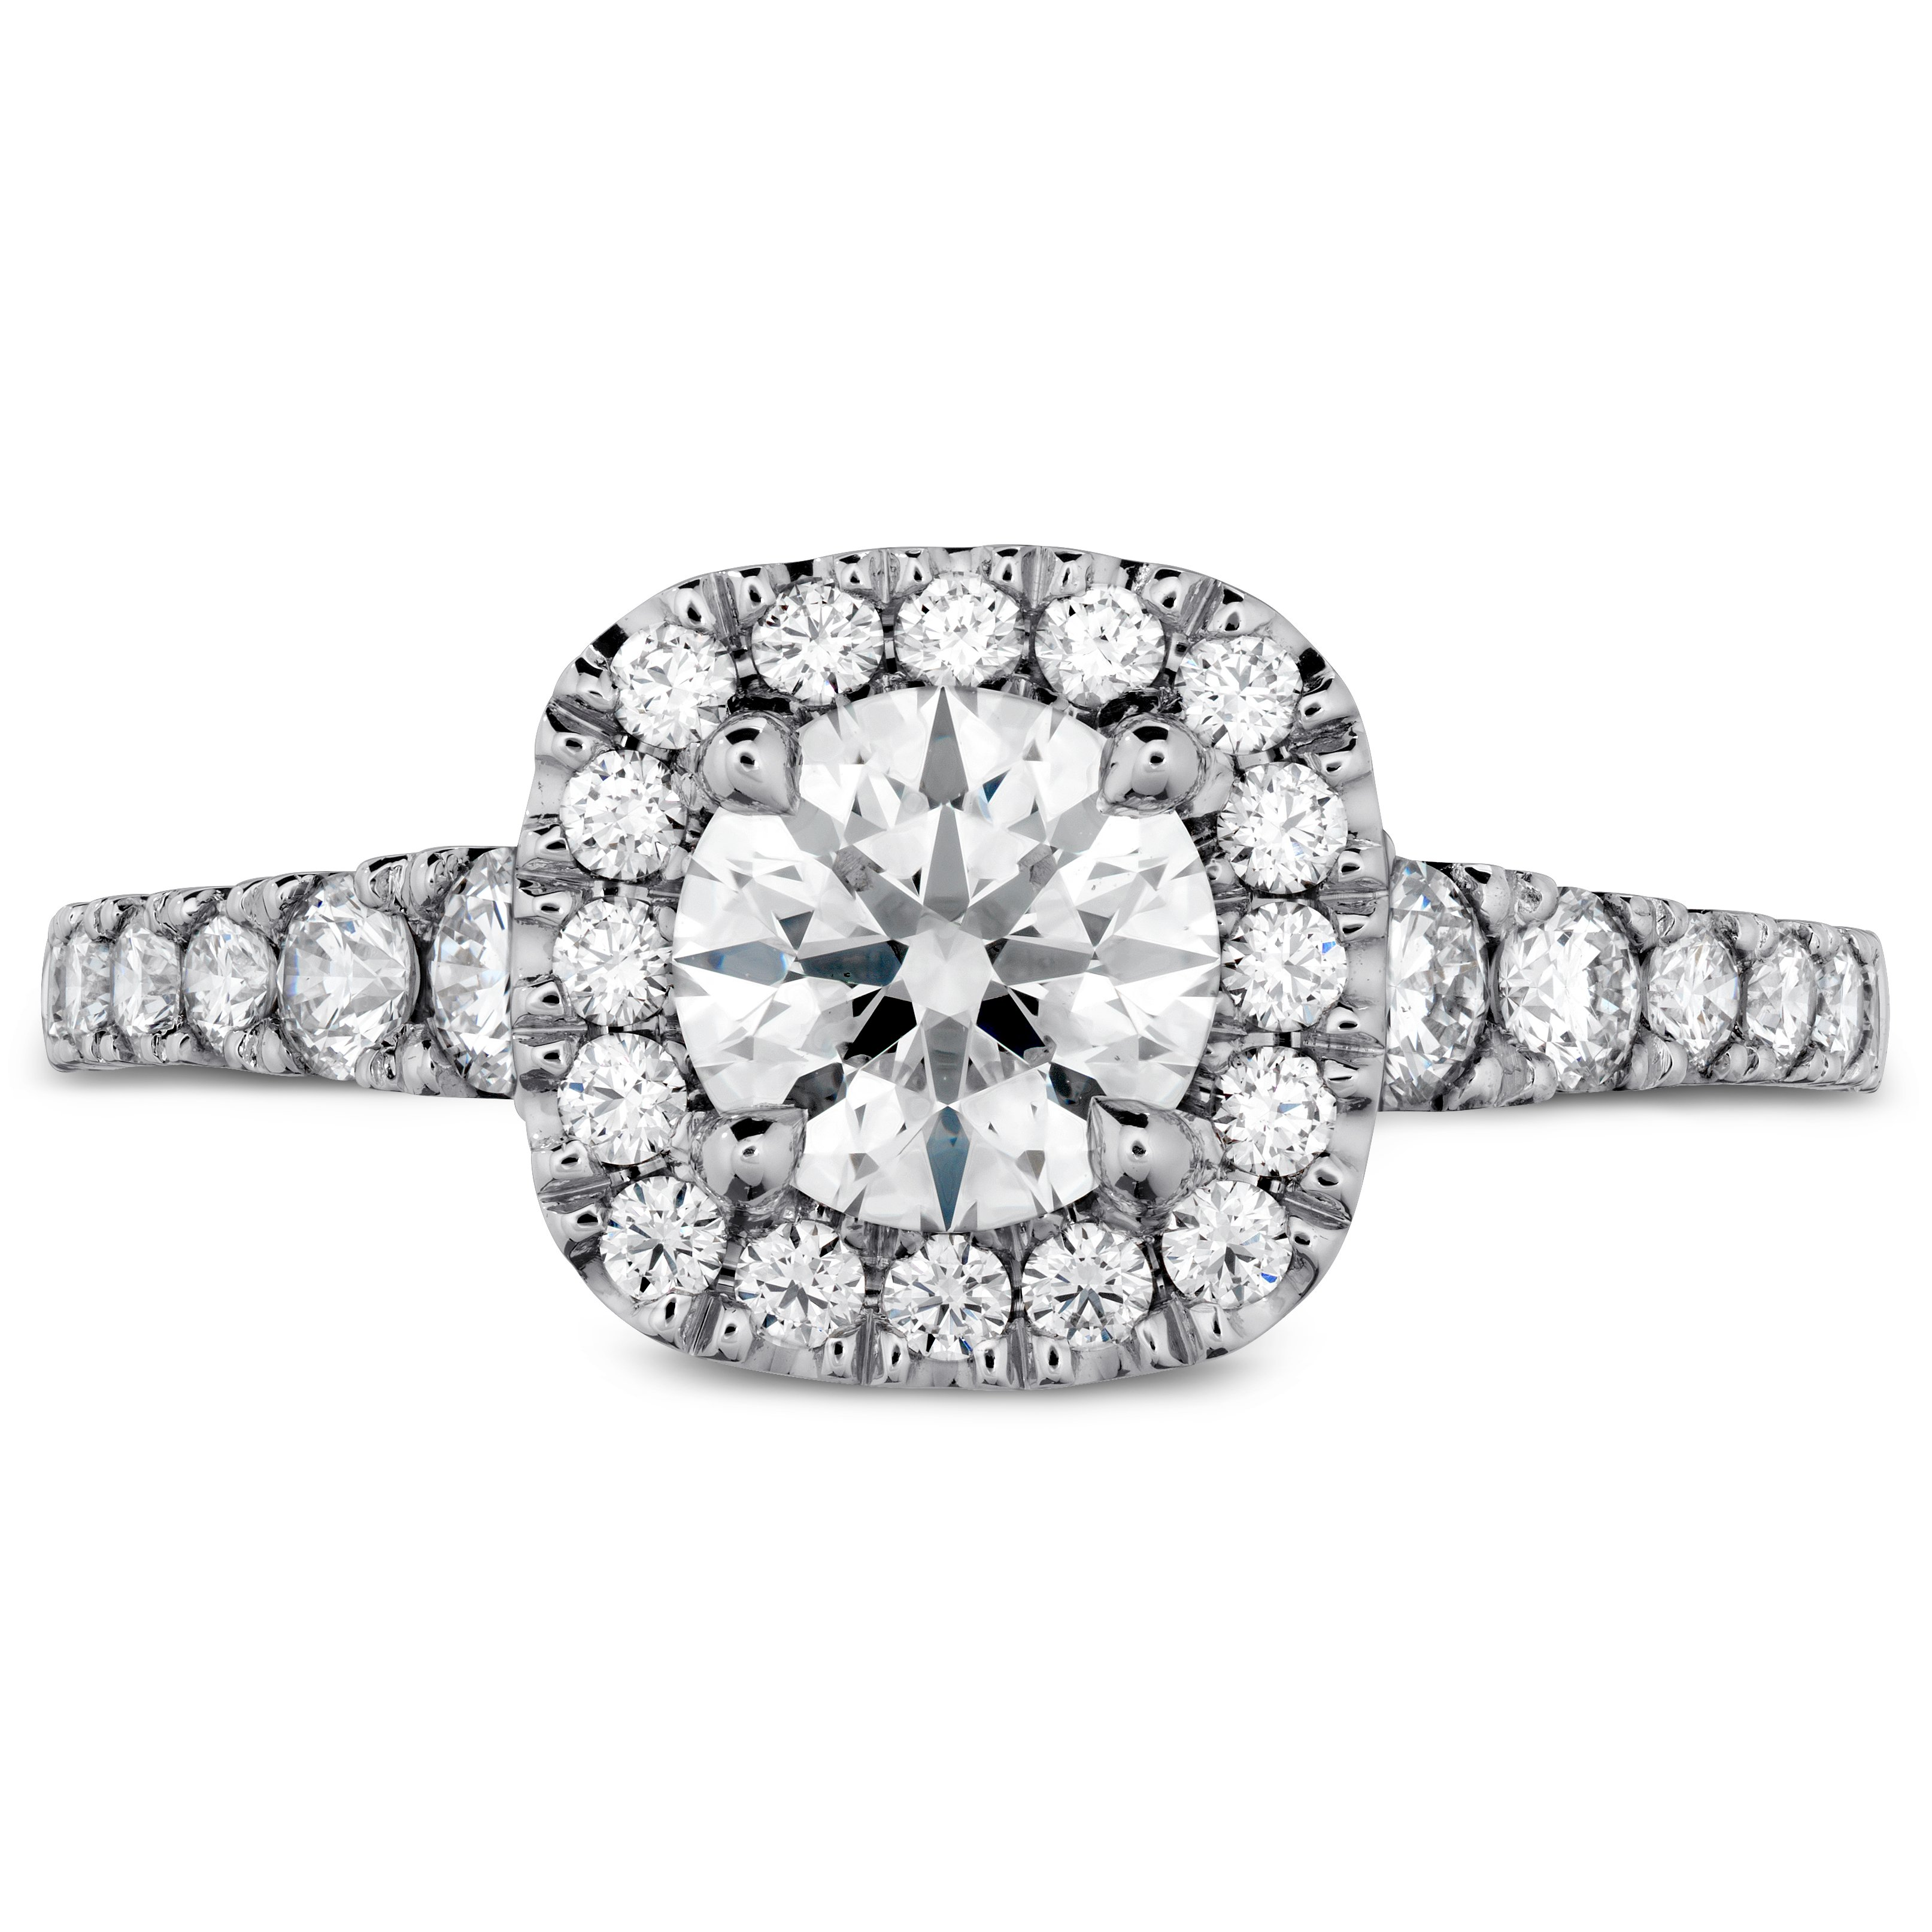 72168af61 Hearts on Fire Transcend Premier Custom Halo Diamond Engagement Ring